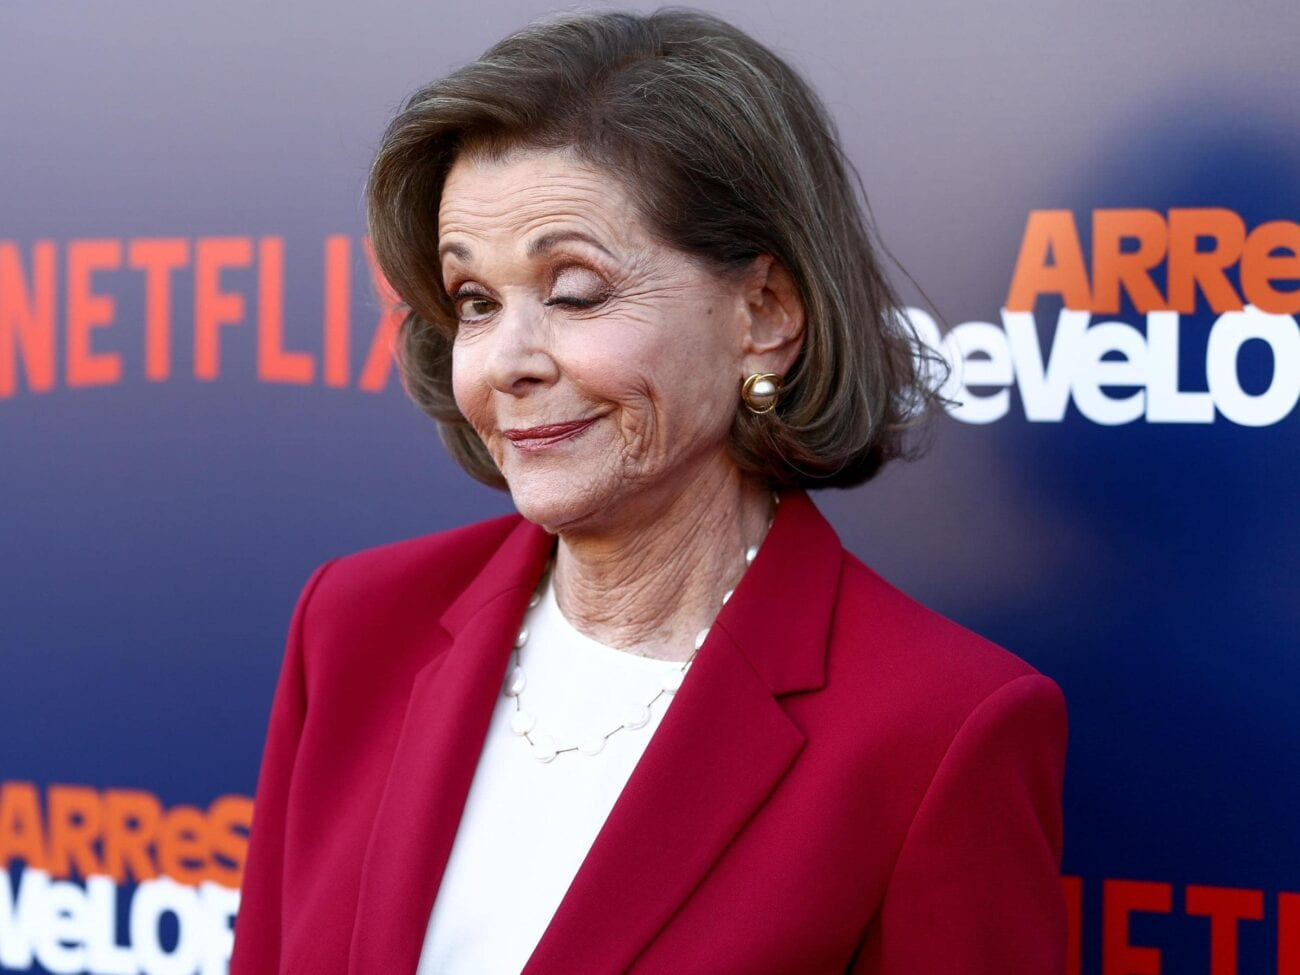 The talented Jessica Walter has passed away at age 80. Have a vodka martini and honor her legacy by celebrating her best character: Lucille Bluth!